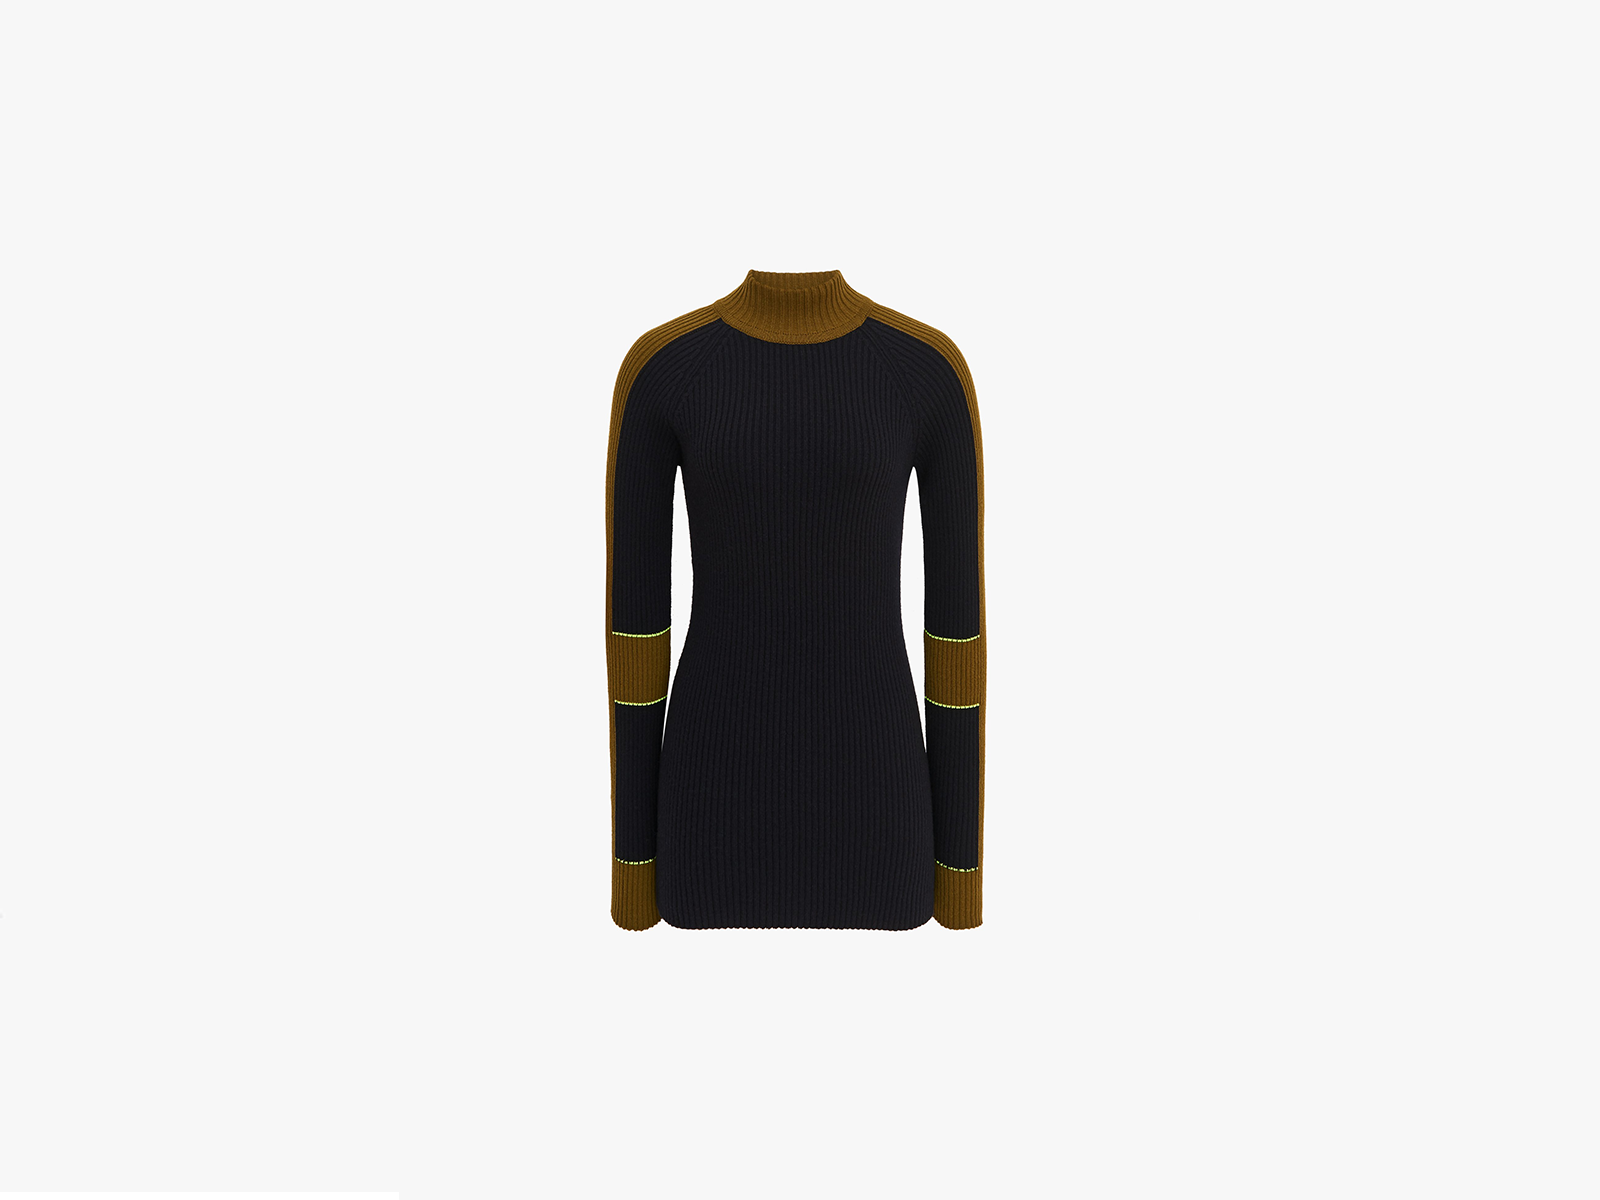 Victoria Beckham Colour Block Mock Neck Jumper In Navy/Olive Green